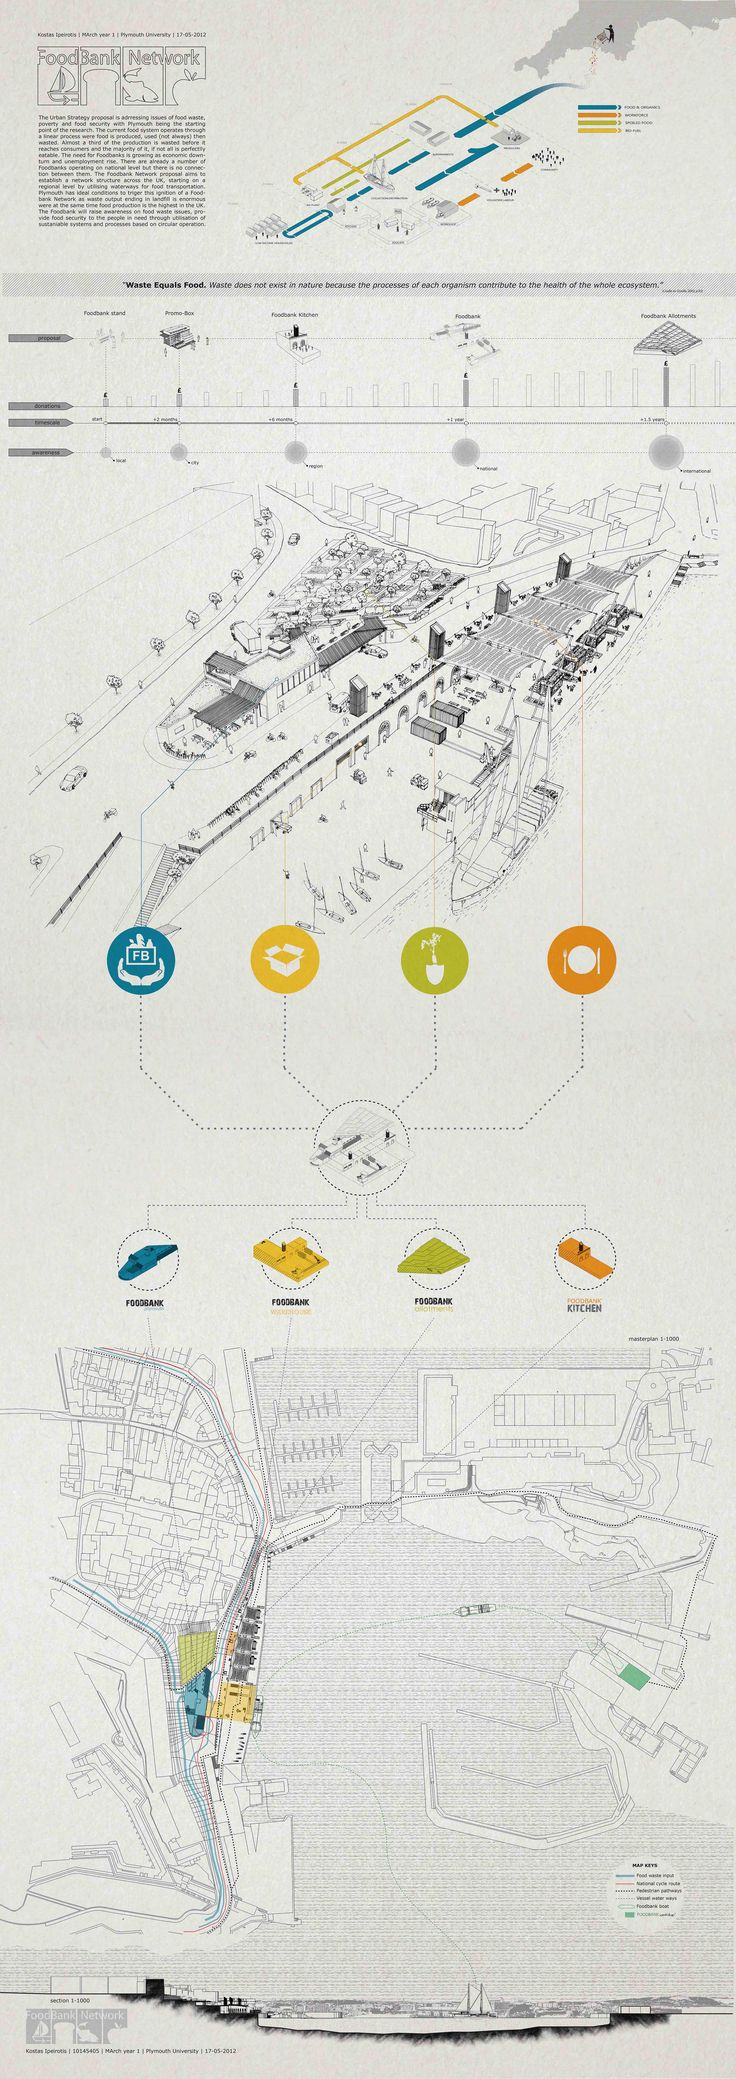 Kostas Ipeirotis - Plymouth University - UK -MArch Year 1 project - Foodbank Network [architectural drawing, plain colours, screen print, presentation board]